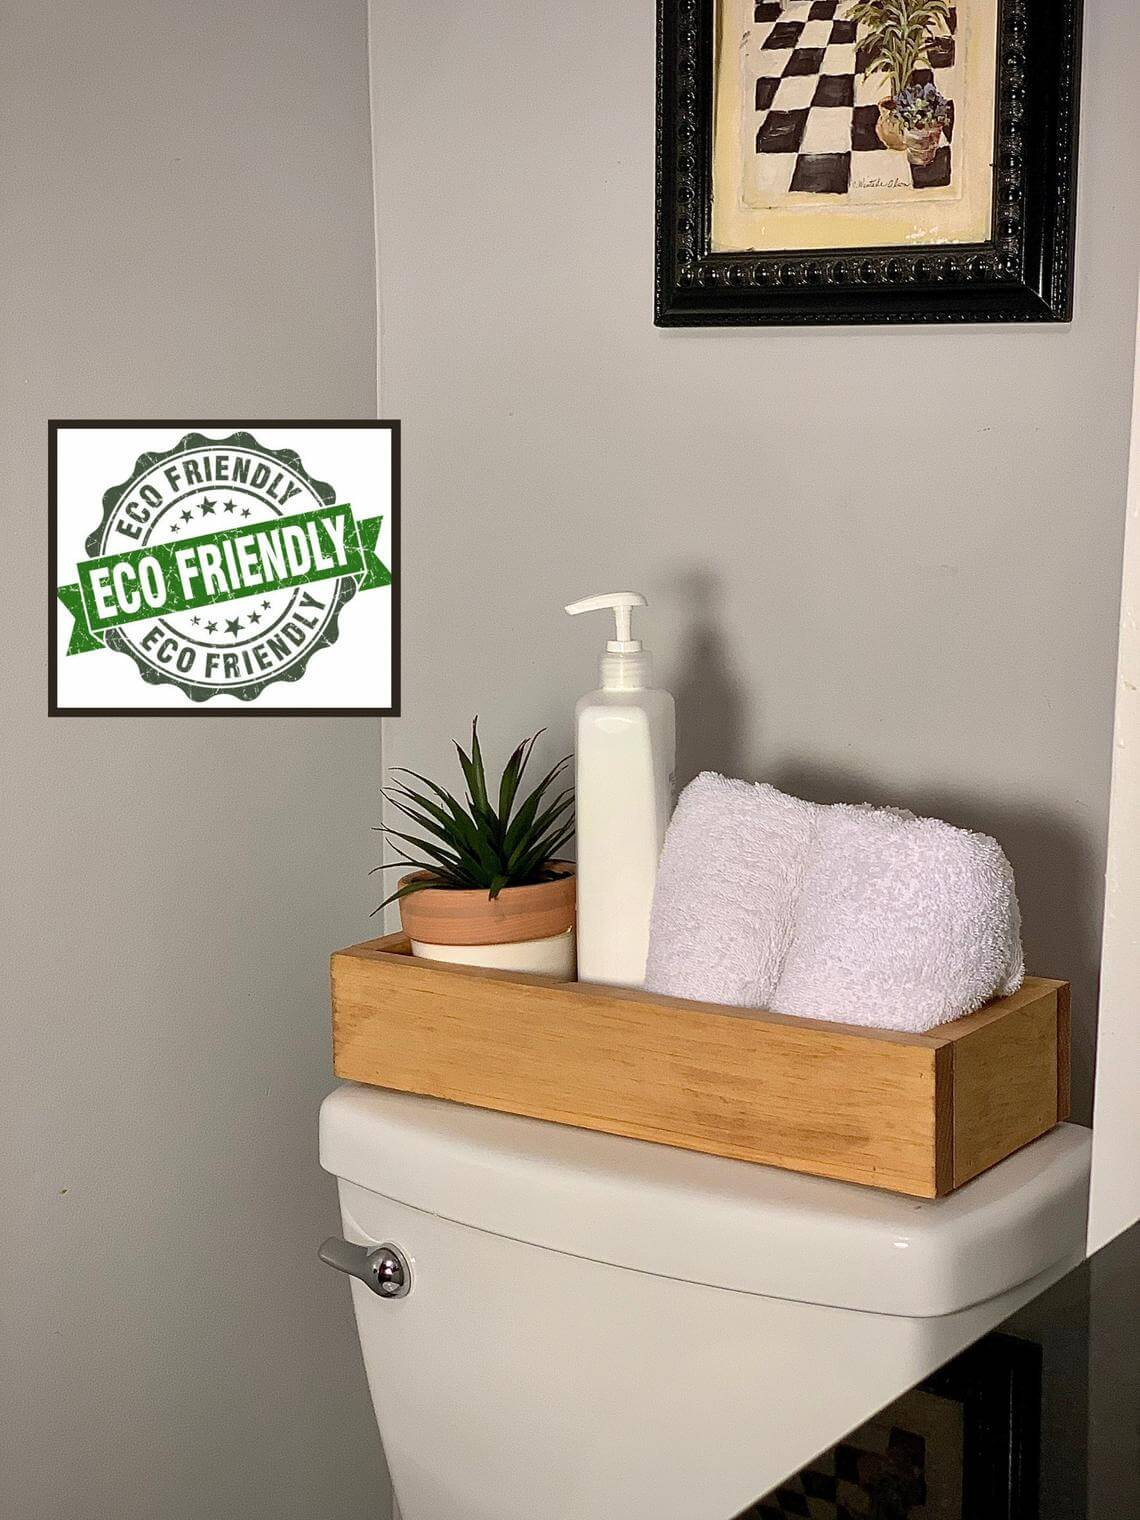 Reclaimed and Water Resistant Decorative Storage Box